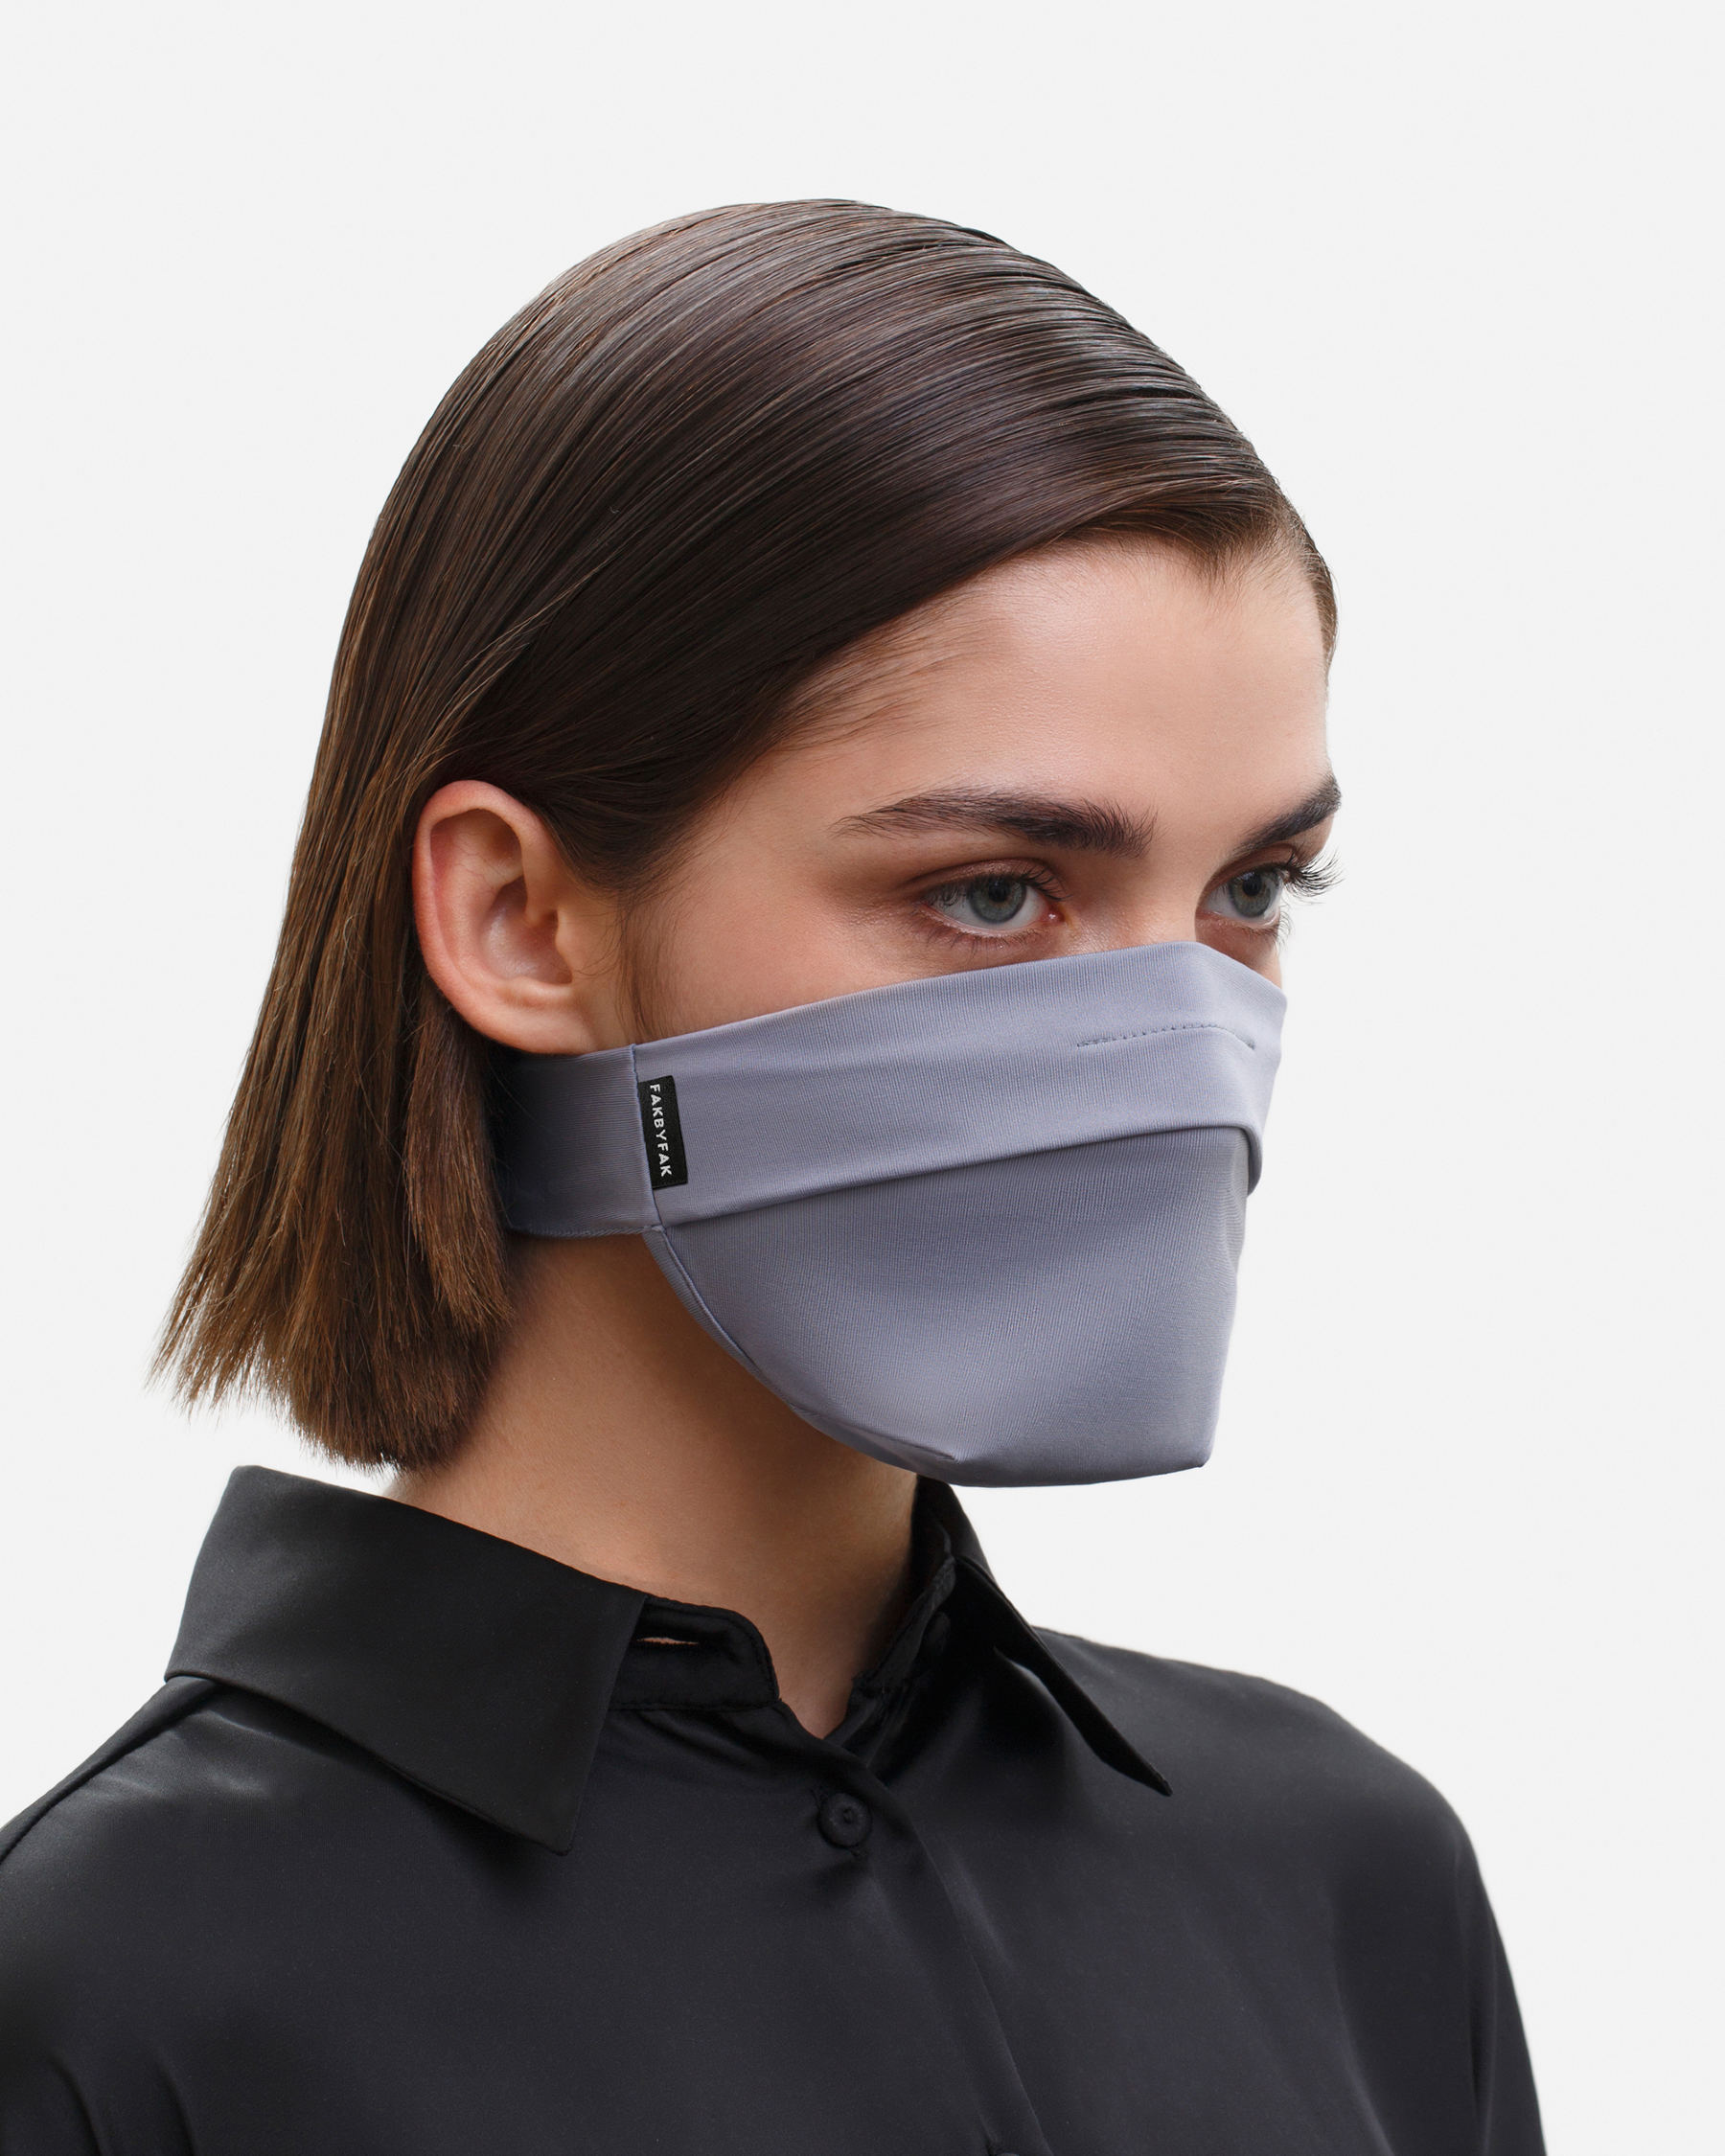 FAKBYFAK  The Vega. Ear Strap-Free High-End Protective Antibacterial (ATB-UV+) Face Mask. Grey Code: FBF-42101-03